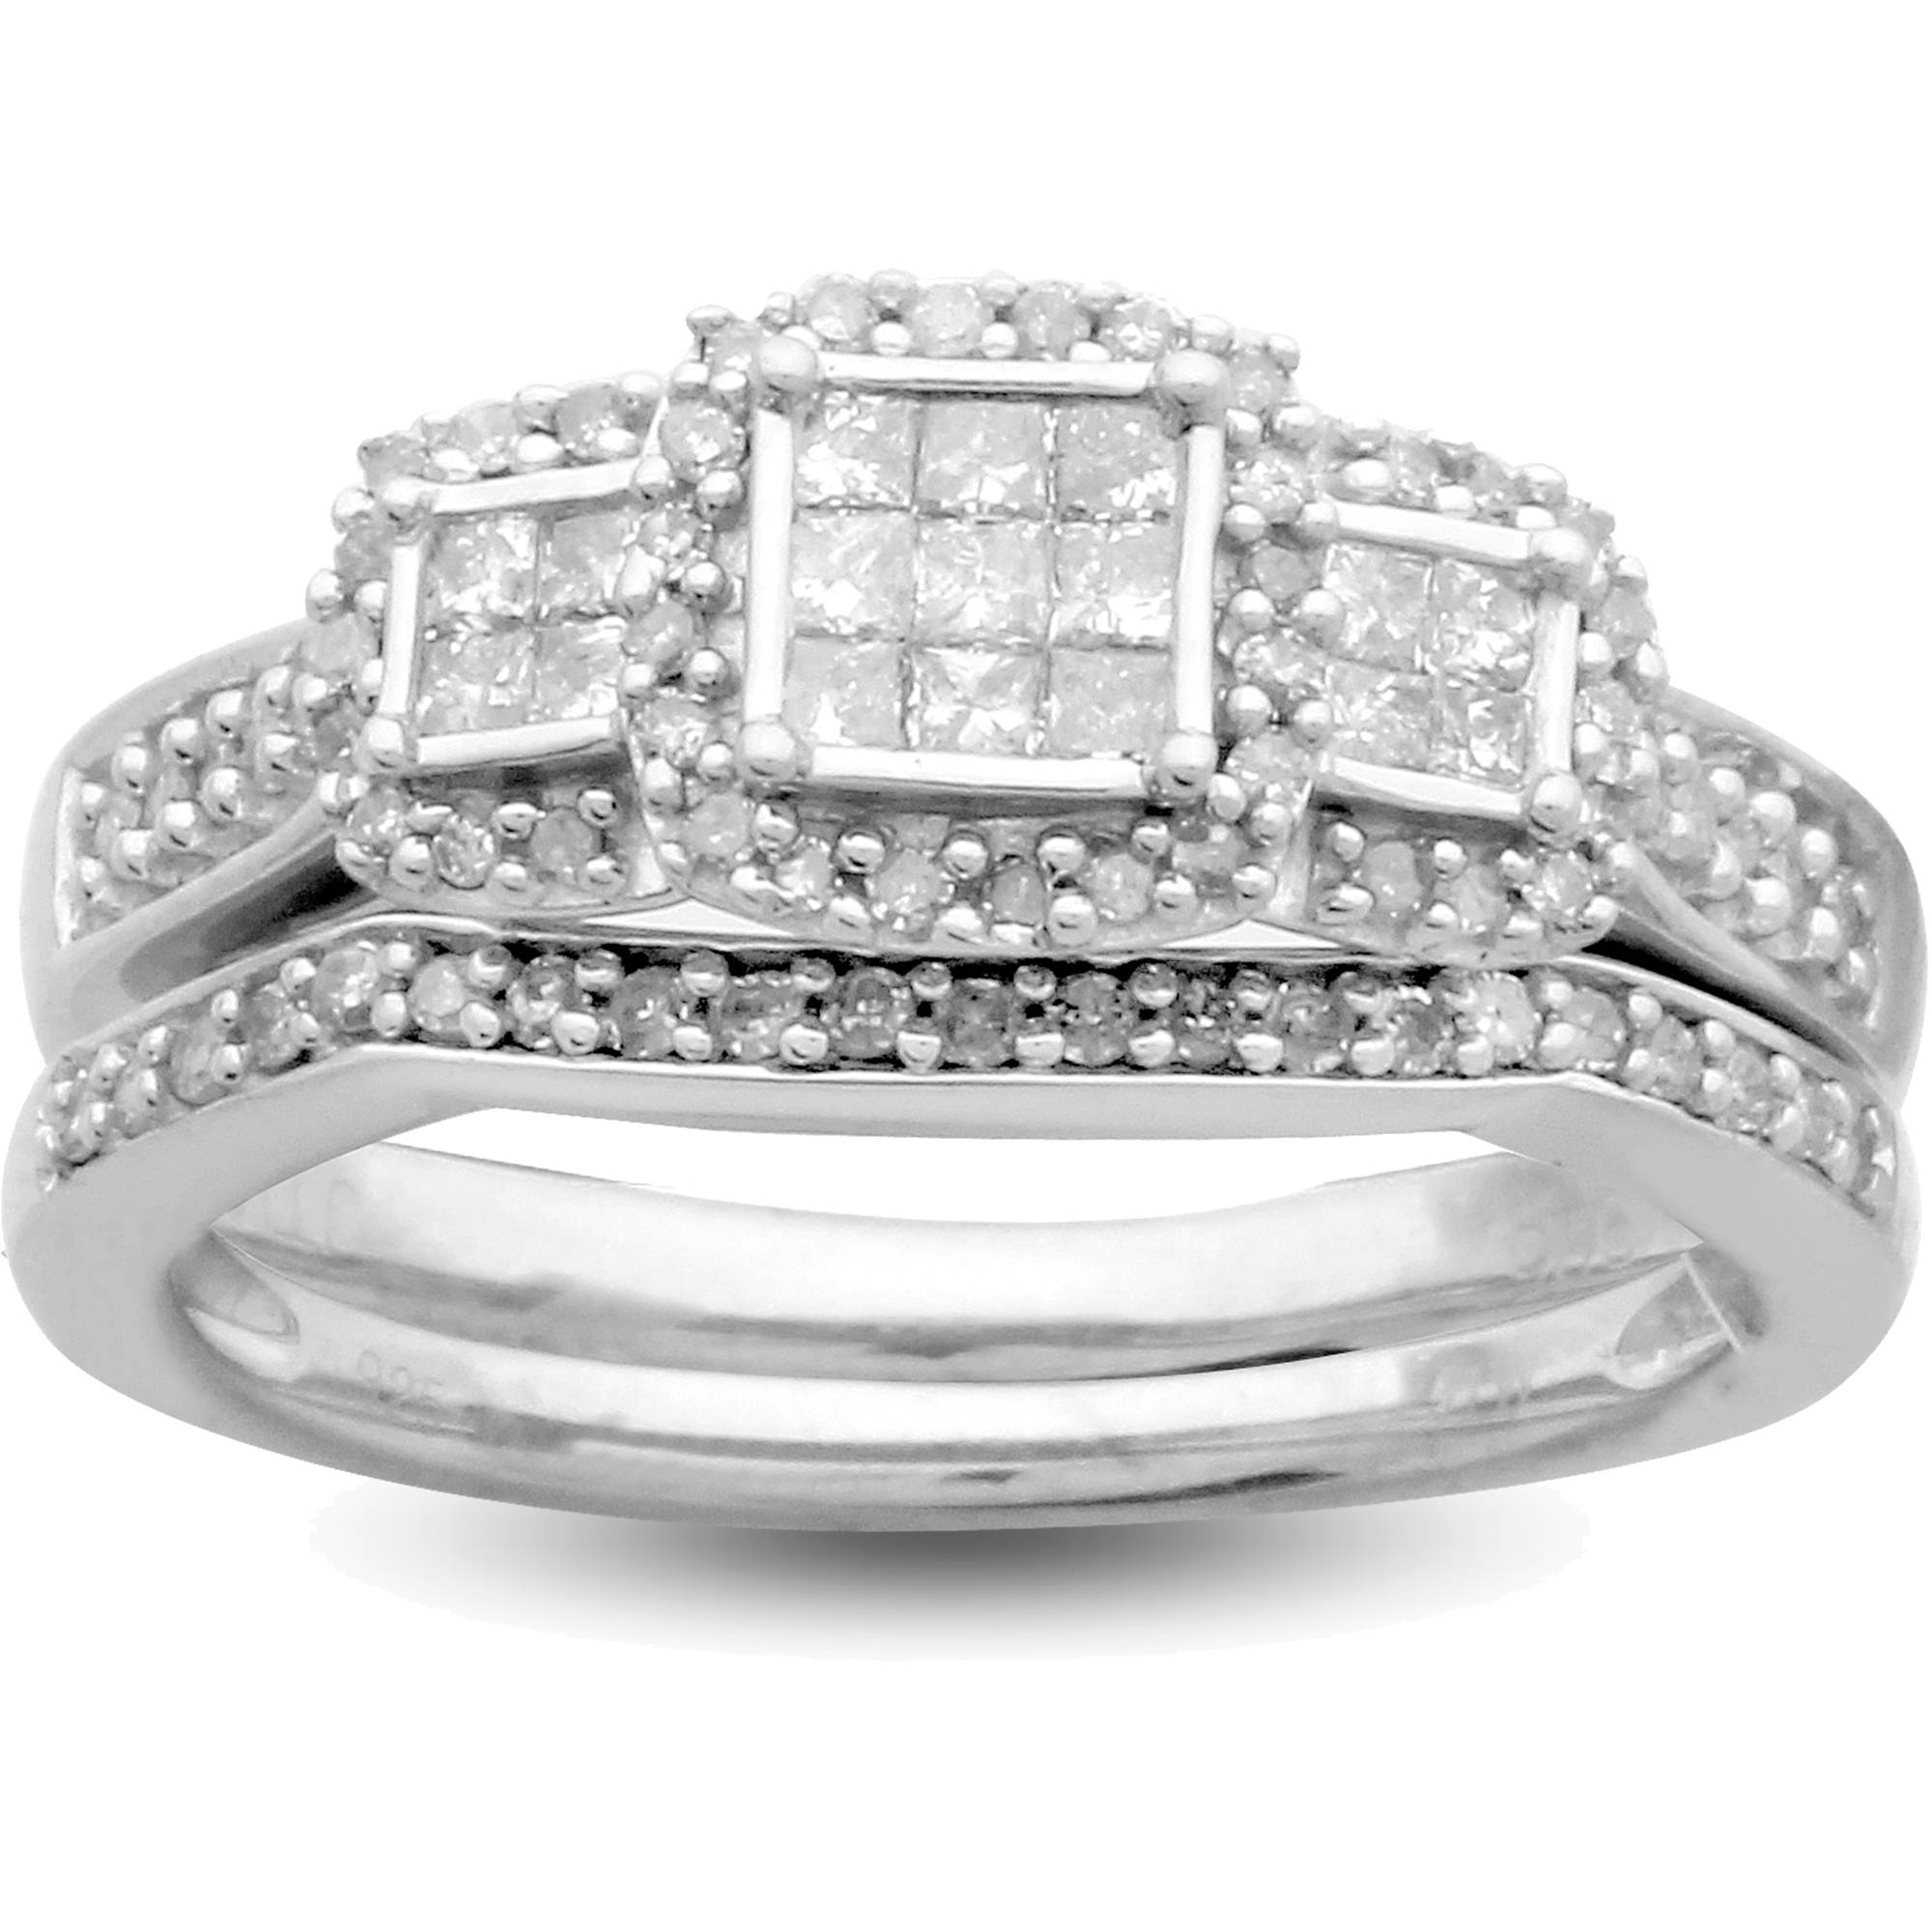 quad me wedding fingers topic your or centers show rings with size smaller carat